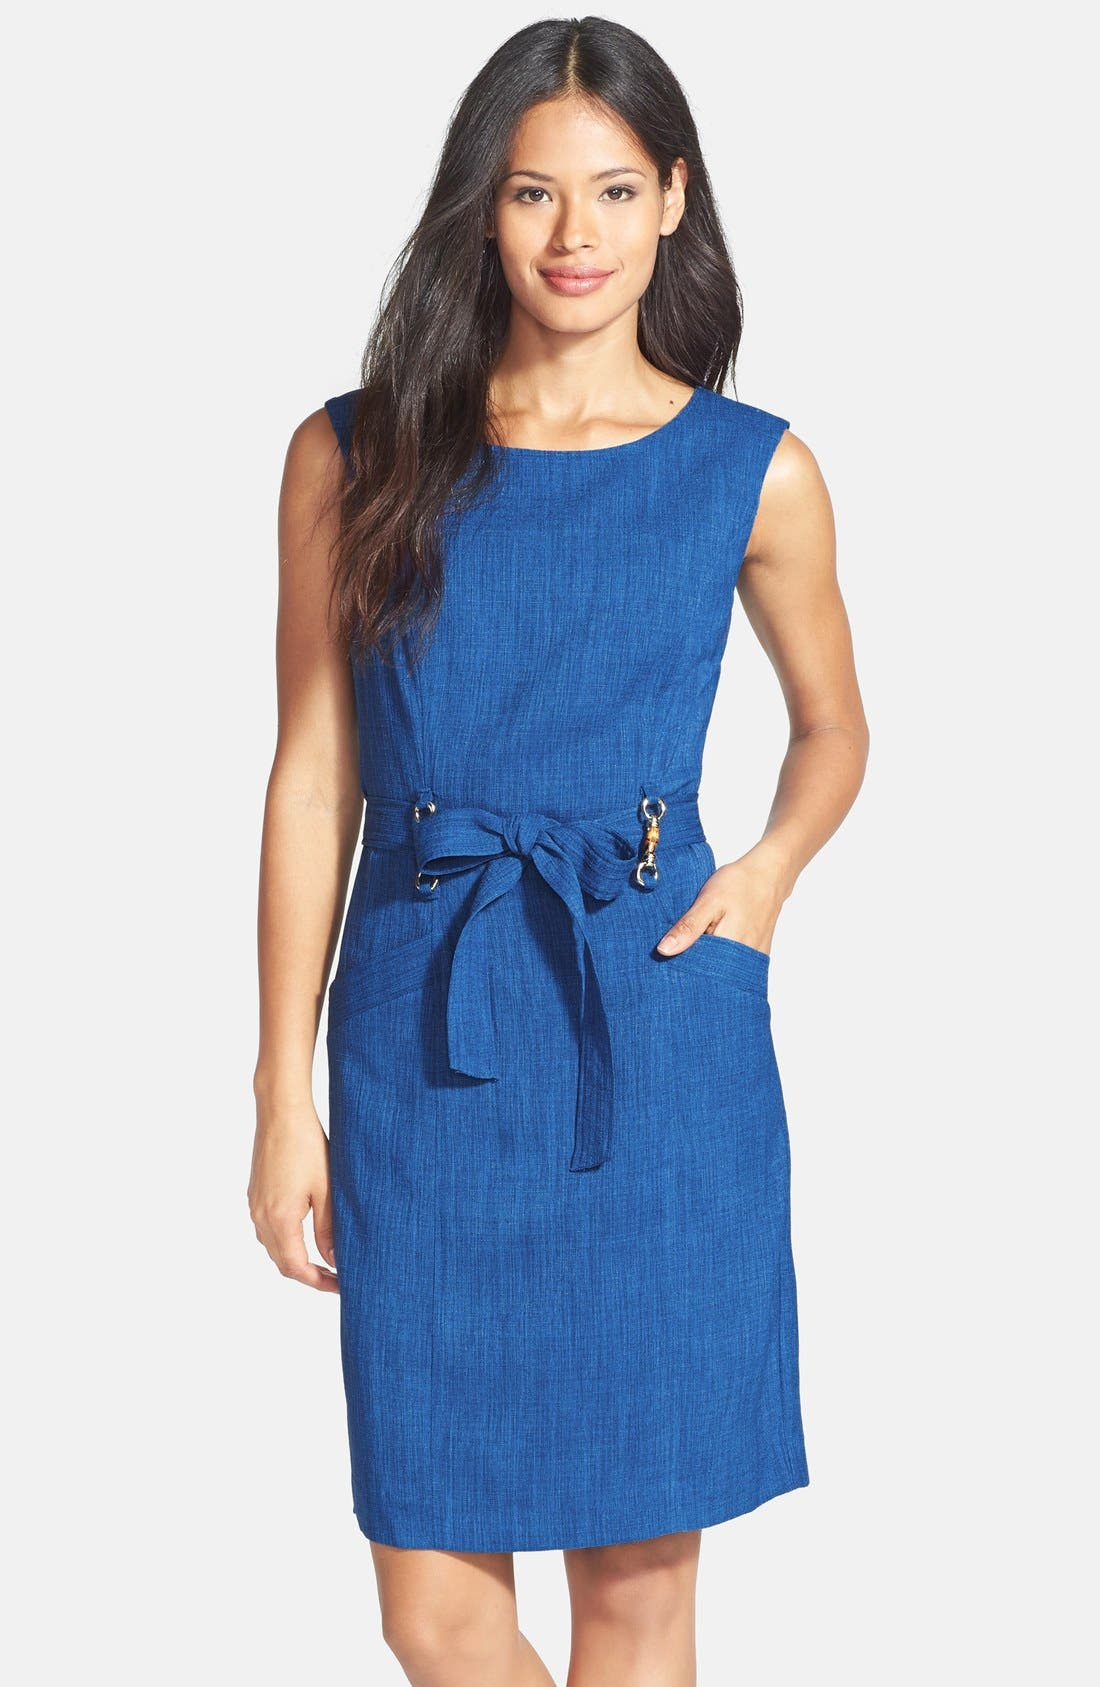 Alternate Image 1 Selected - Ellen Tracy Bamboo Detail Belted Sheath Dress (Petite)